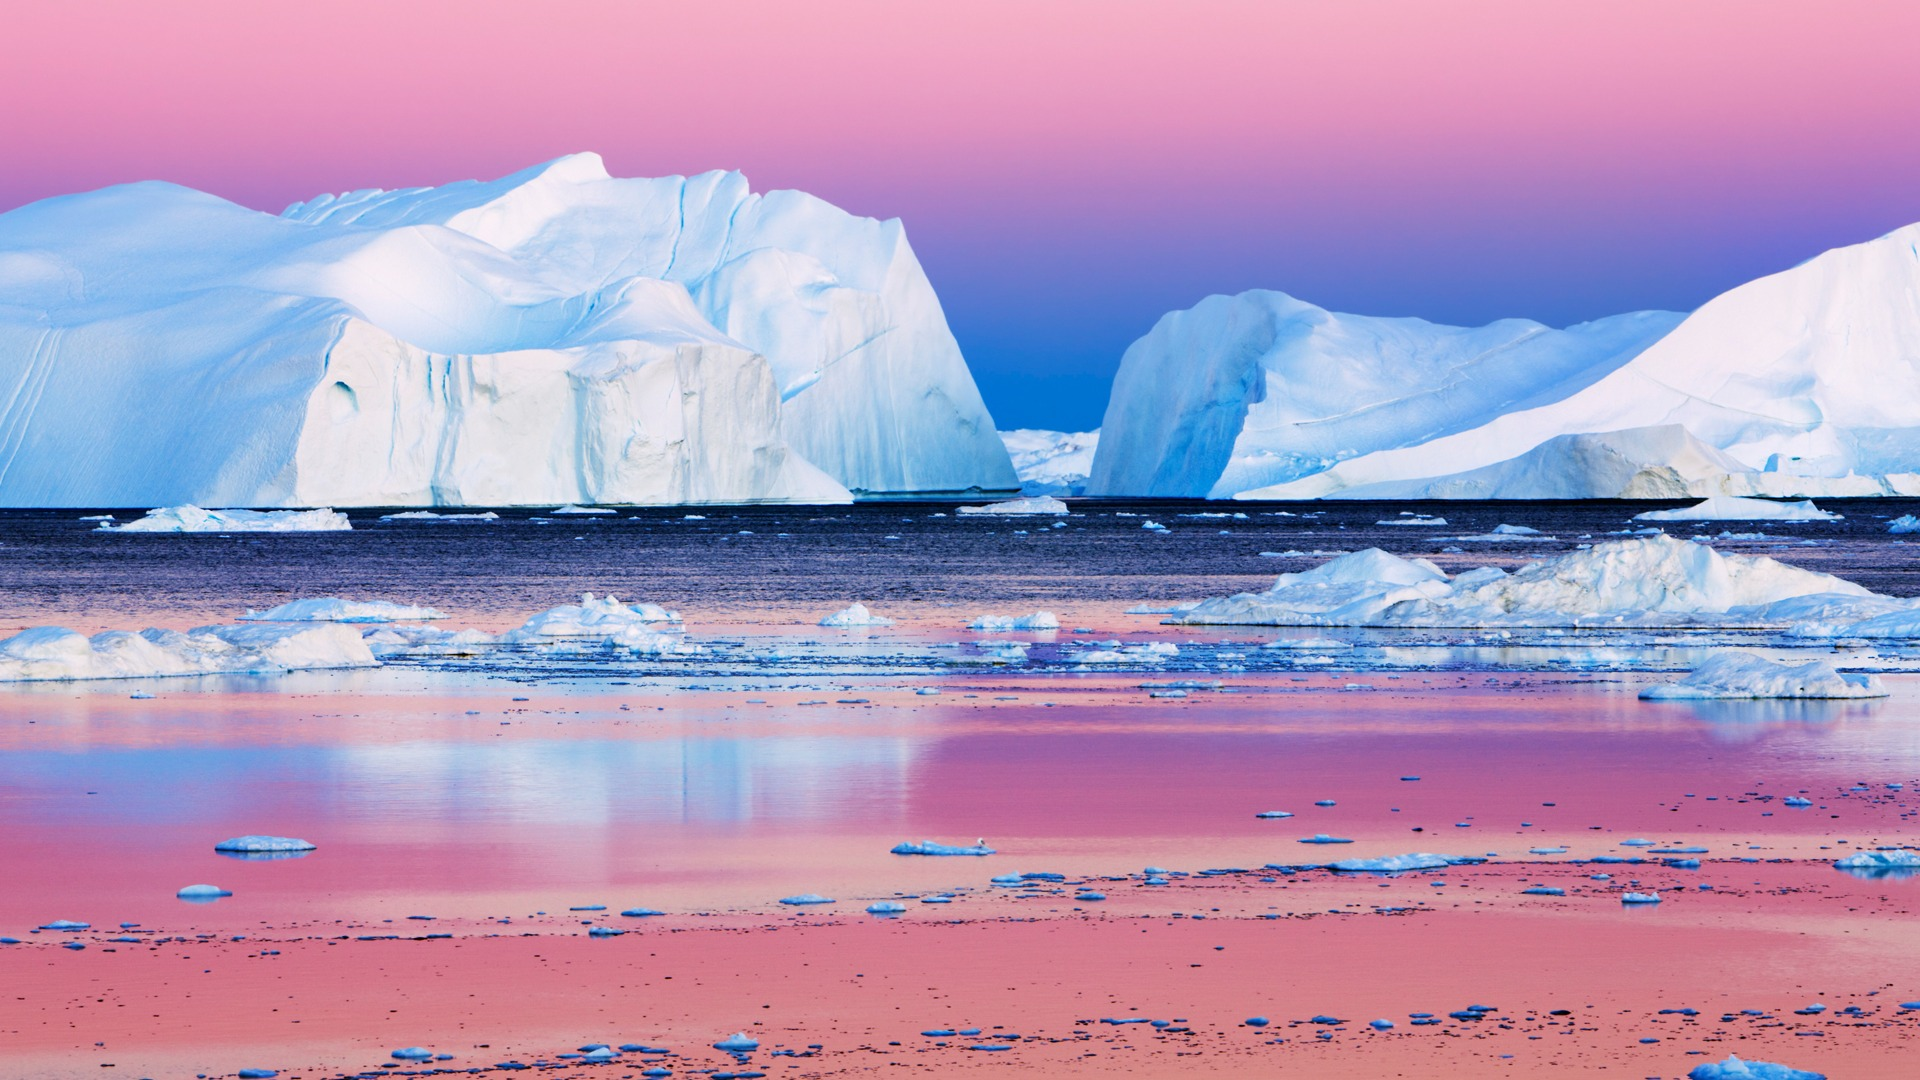 Iceberg wallpaper Disco Bay Greenland - 1920x1080 wallpaper download -